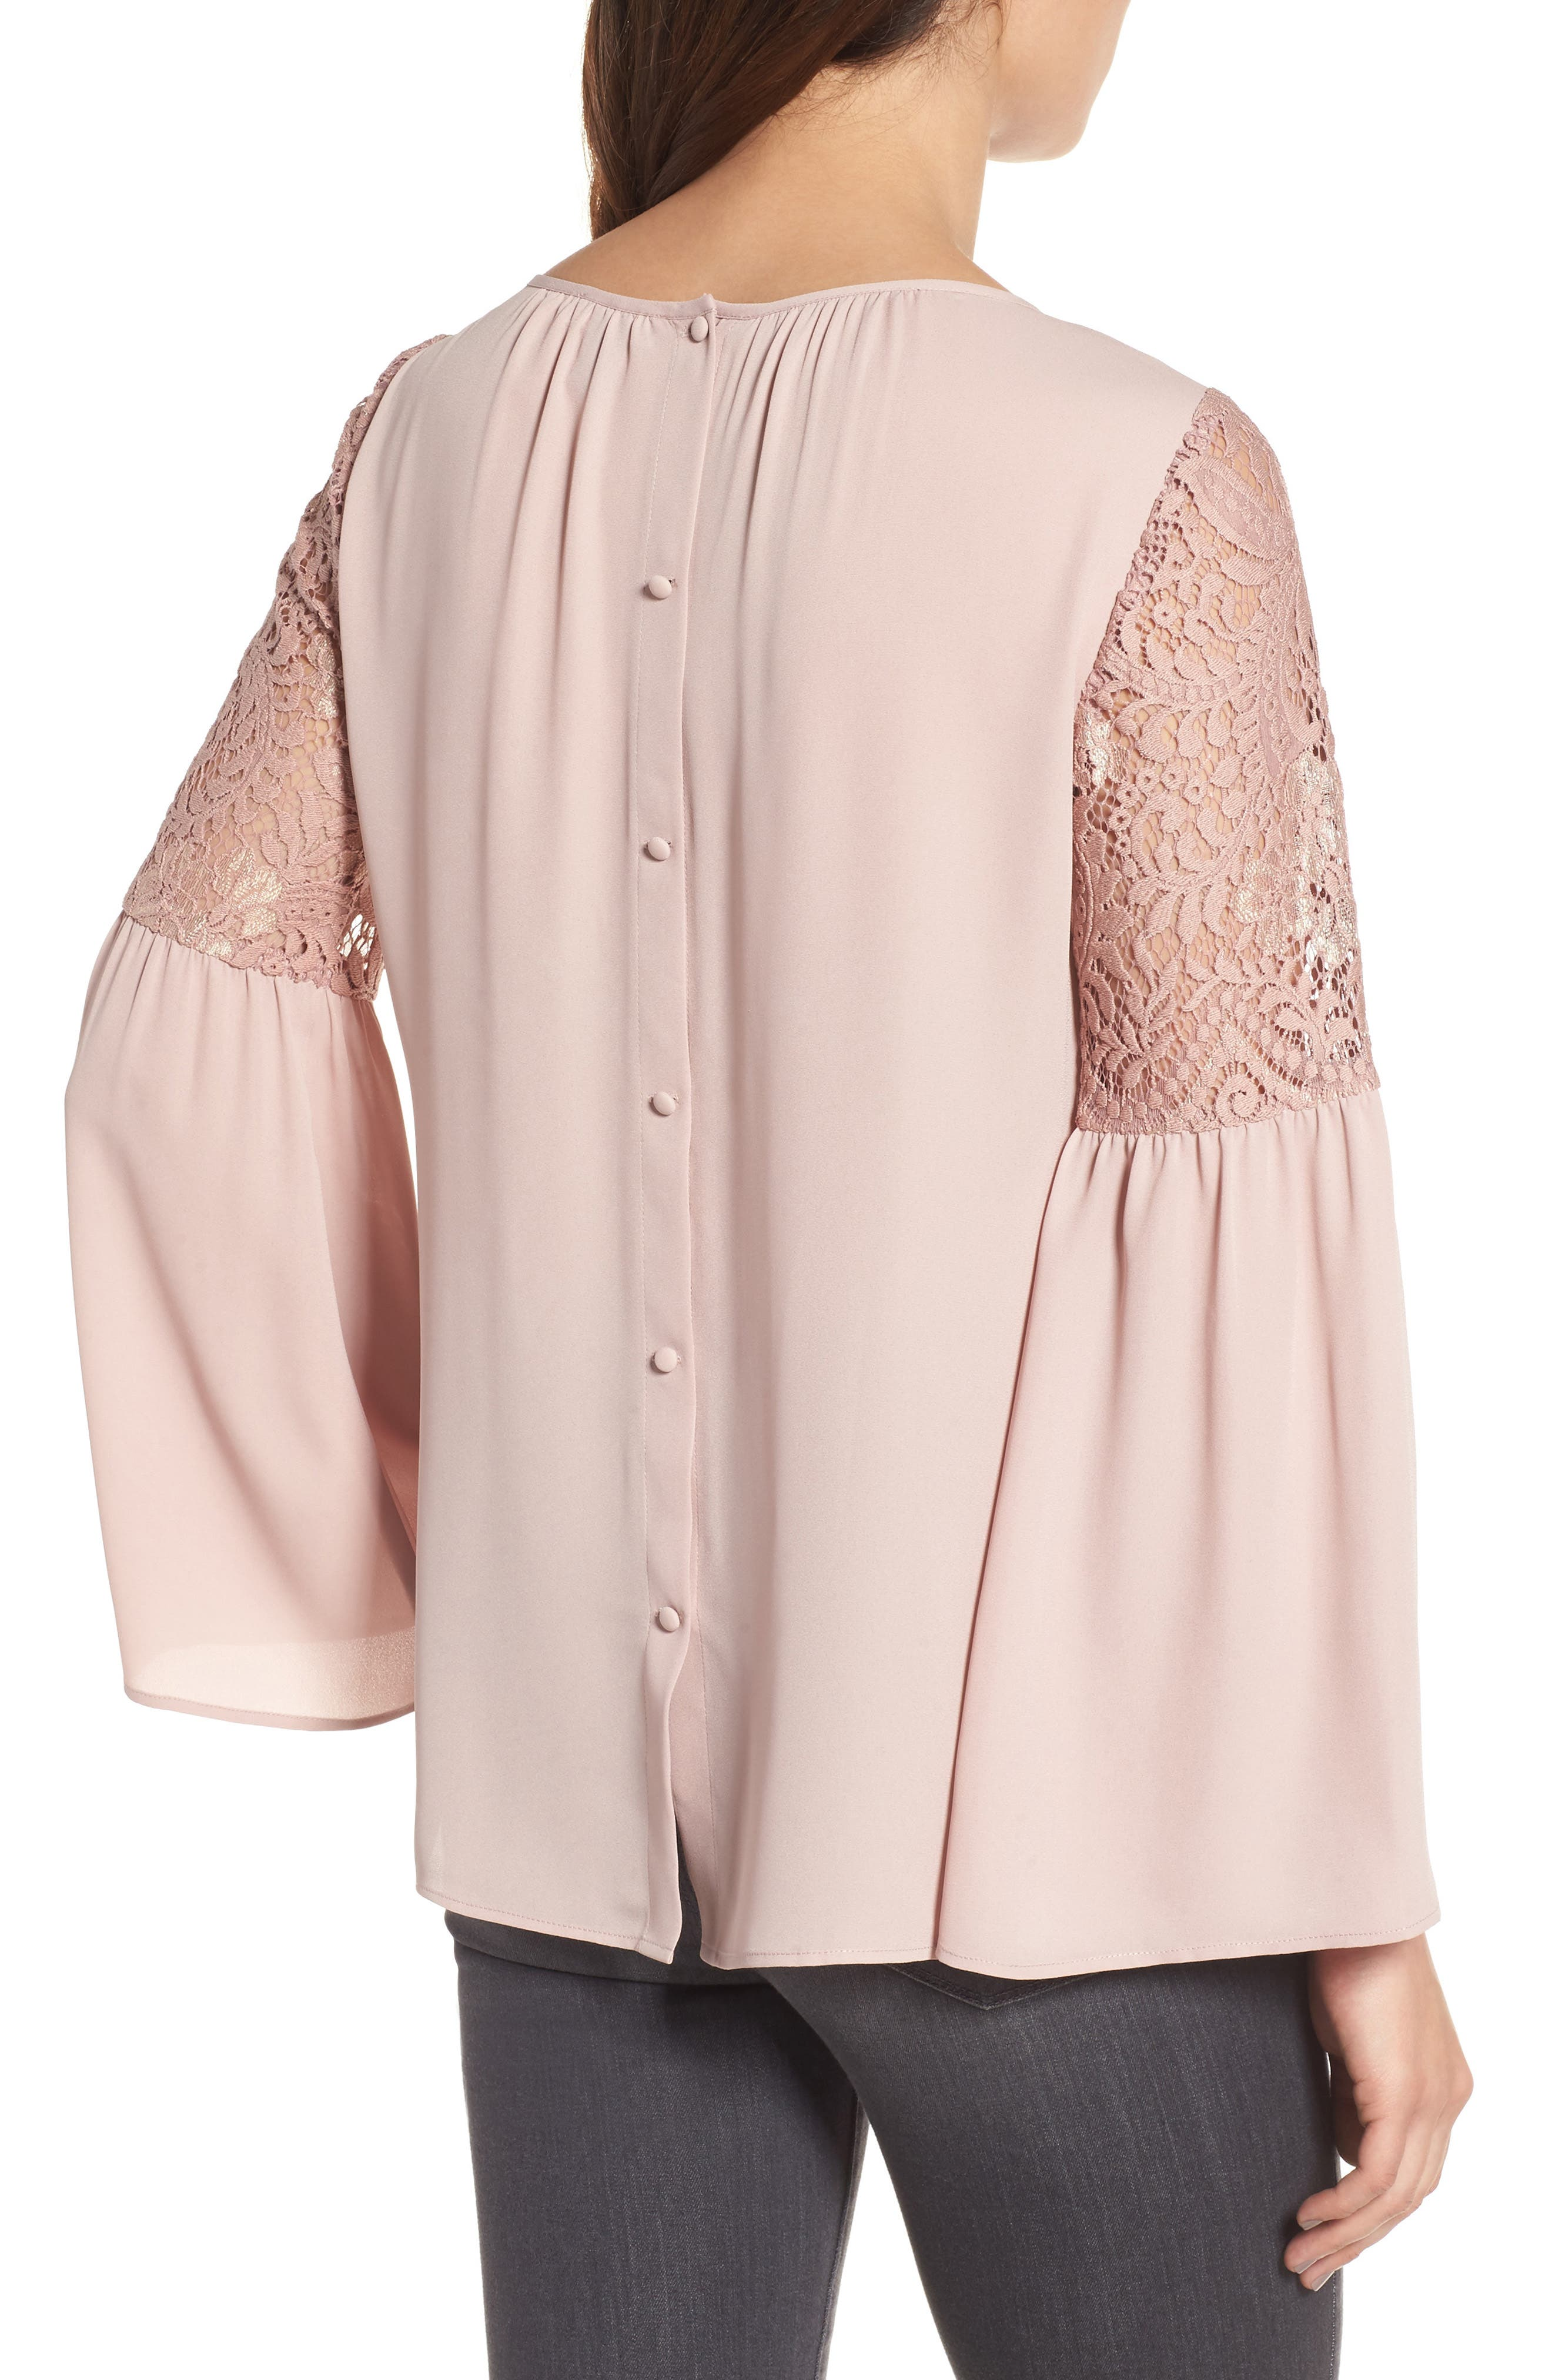 Alternate Image 2  - Chelsea28 Lace Bell Sleeve Top